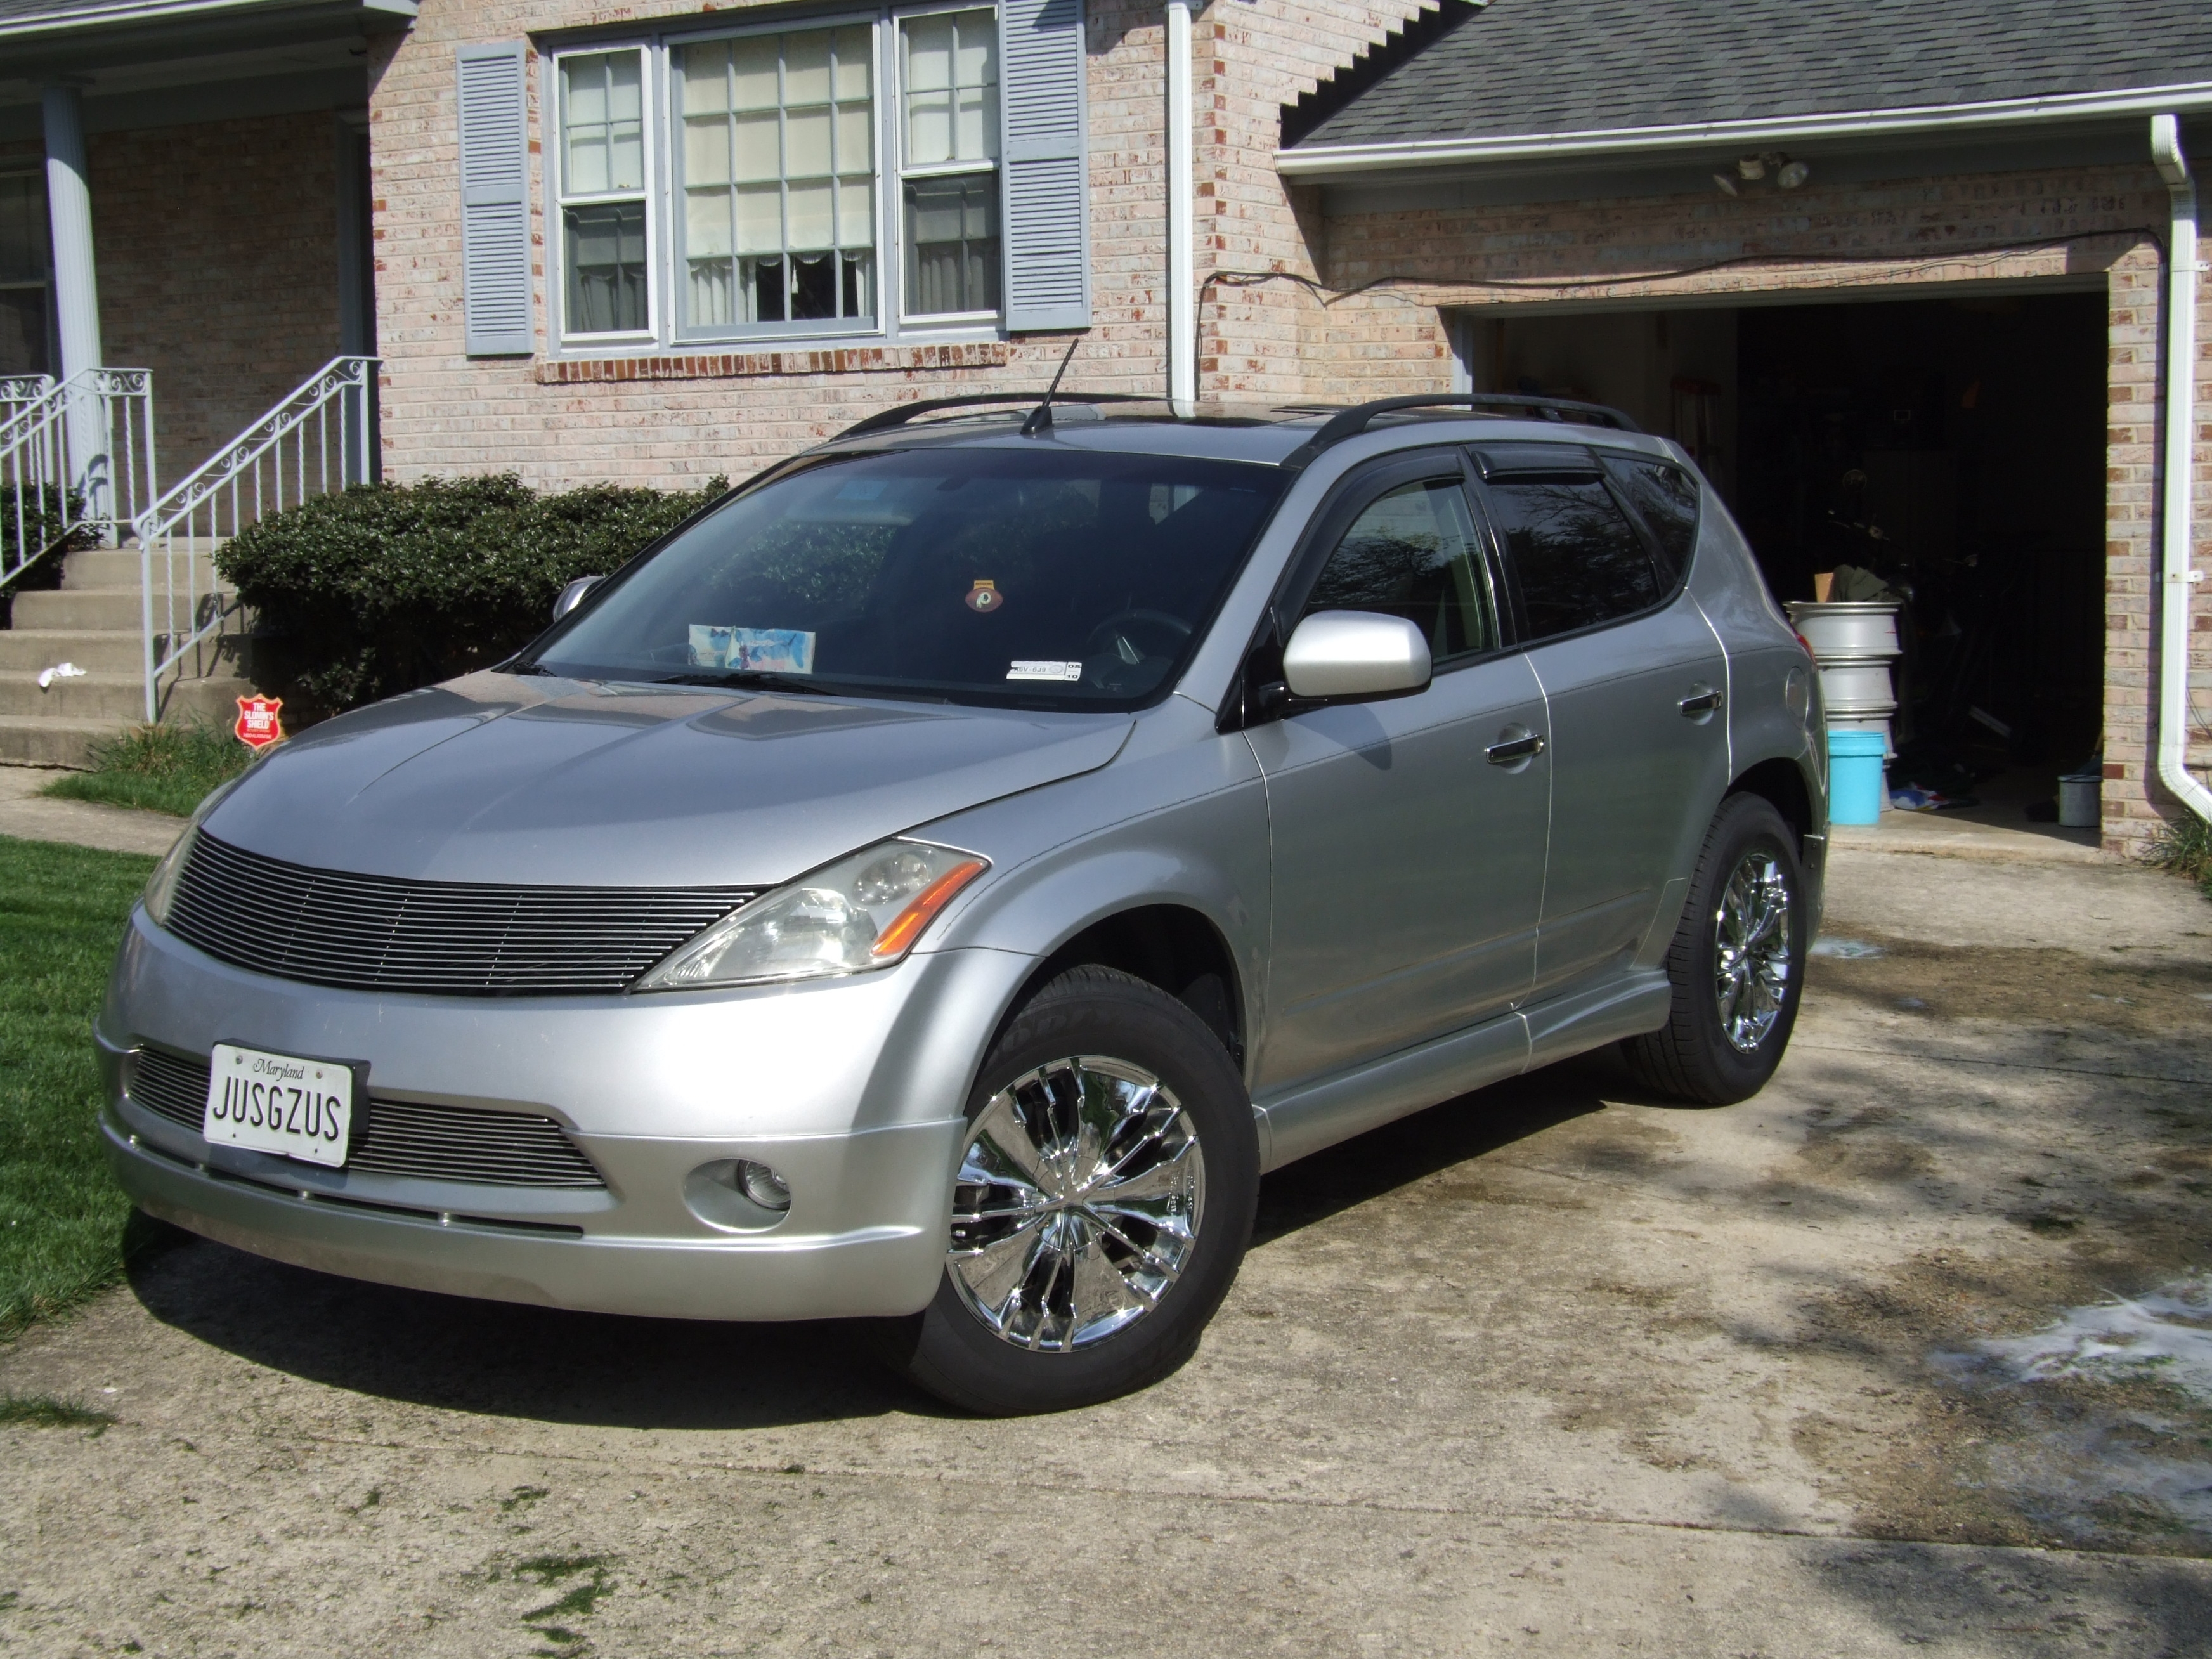 preachtheword 2003 nissan murano specs photos modification info at cardomain. Black Bedroom Furniture Sets. Home Design Ideas